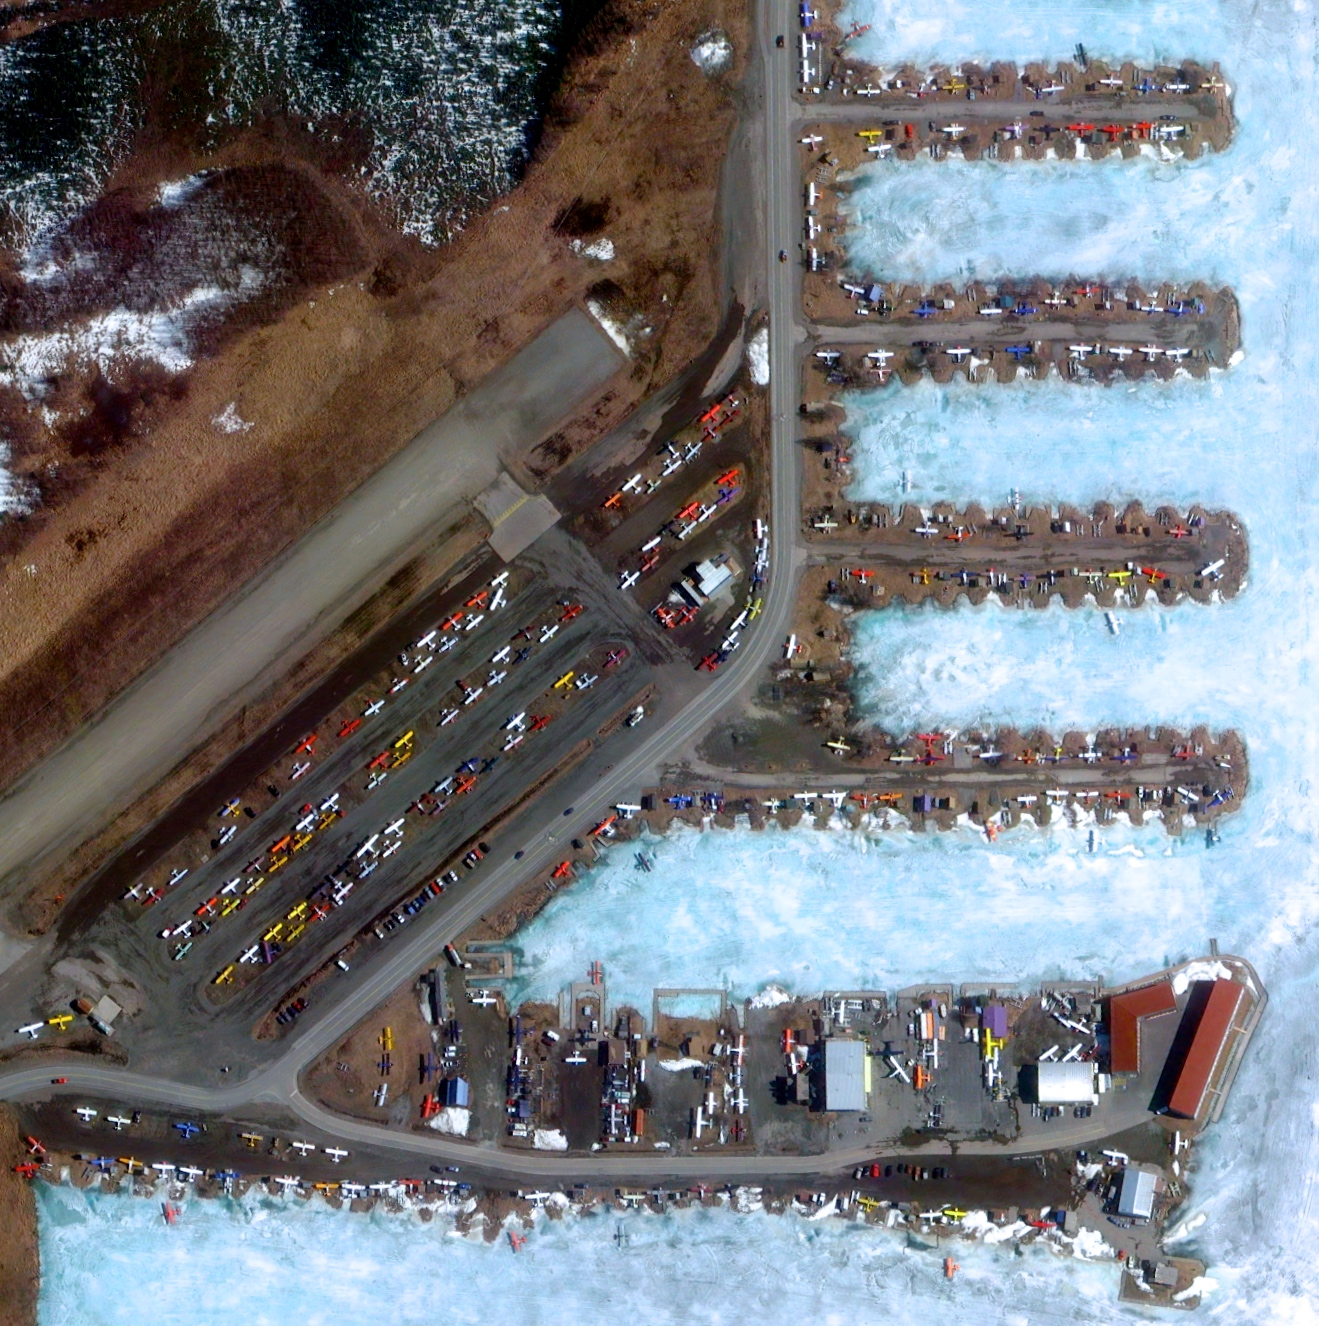 5/13/2015   Lake Hood Seaplane Base   Anchorage, Alaska, USA  61°10′54″N 149°57′59″W     The Lake Hood Seaplane Base, captured here during the frozen-over winter, is located in Anchorage, Alaska, USA. Handling an average of 190 flights per day, the facility is the world's busiest airport for seaplanes.